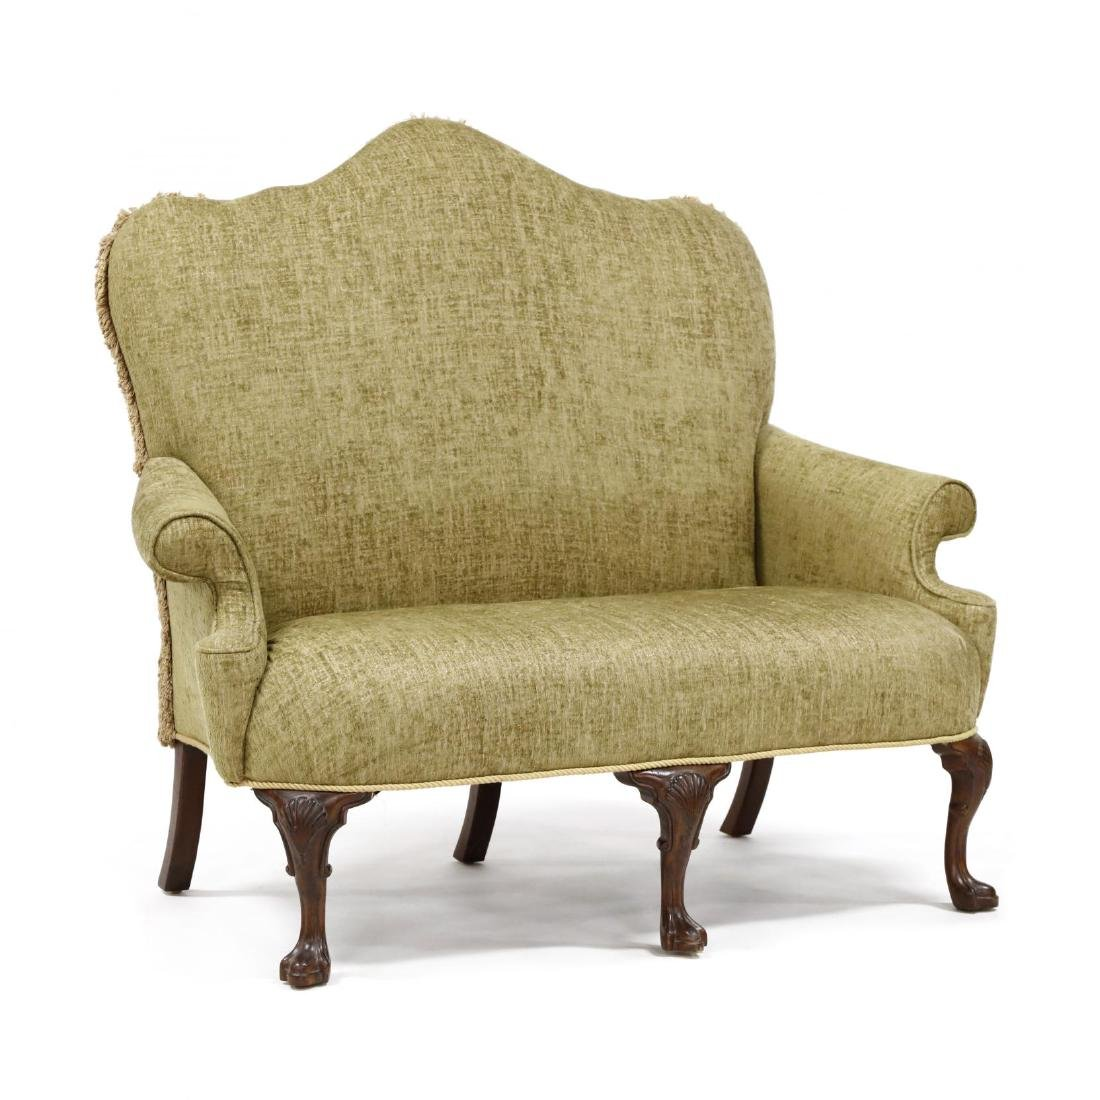 Queen Anne Style Overupholstered Settee